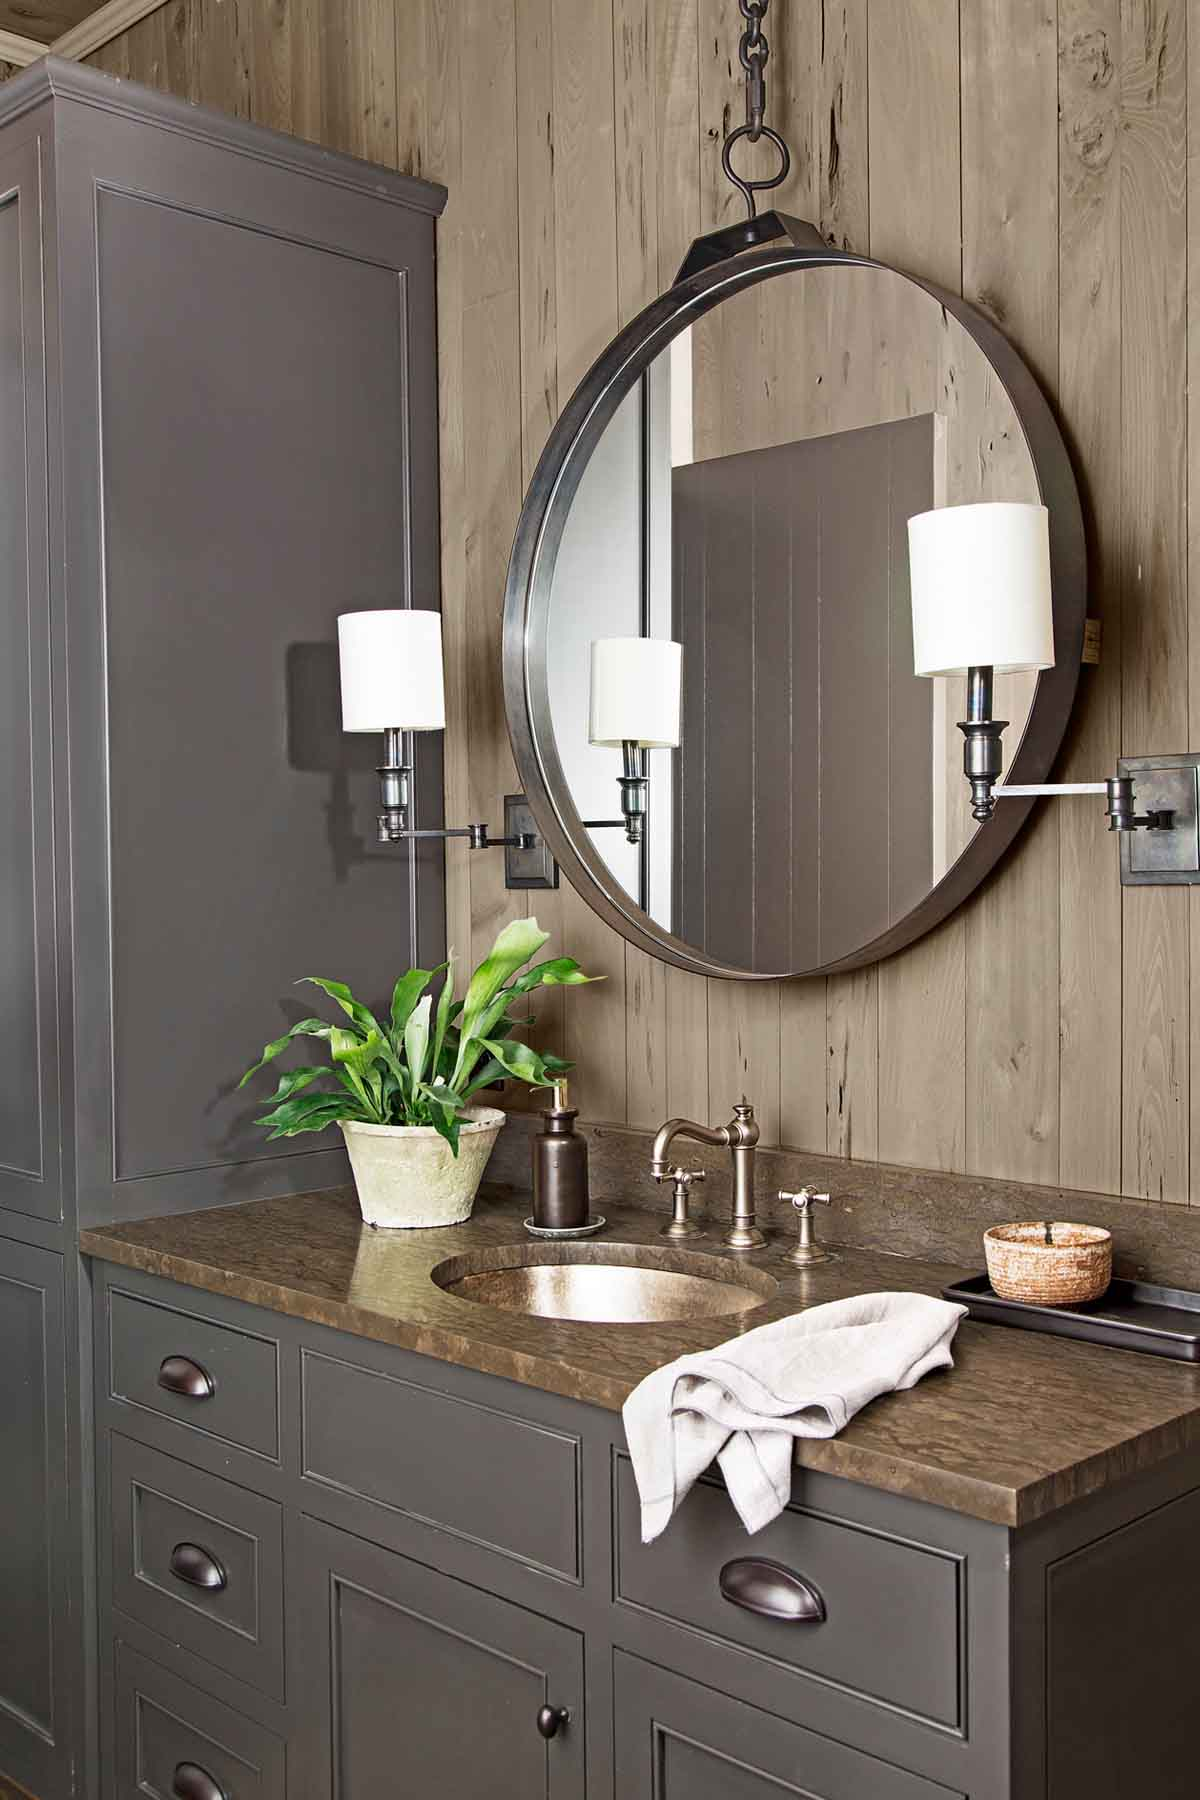 37 rustic bathroom decor ideas rustic modern bathroom designs - Rustic Bathroom